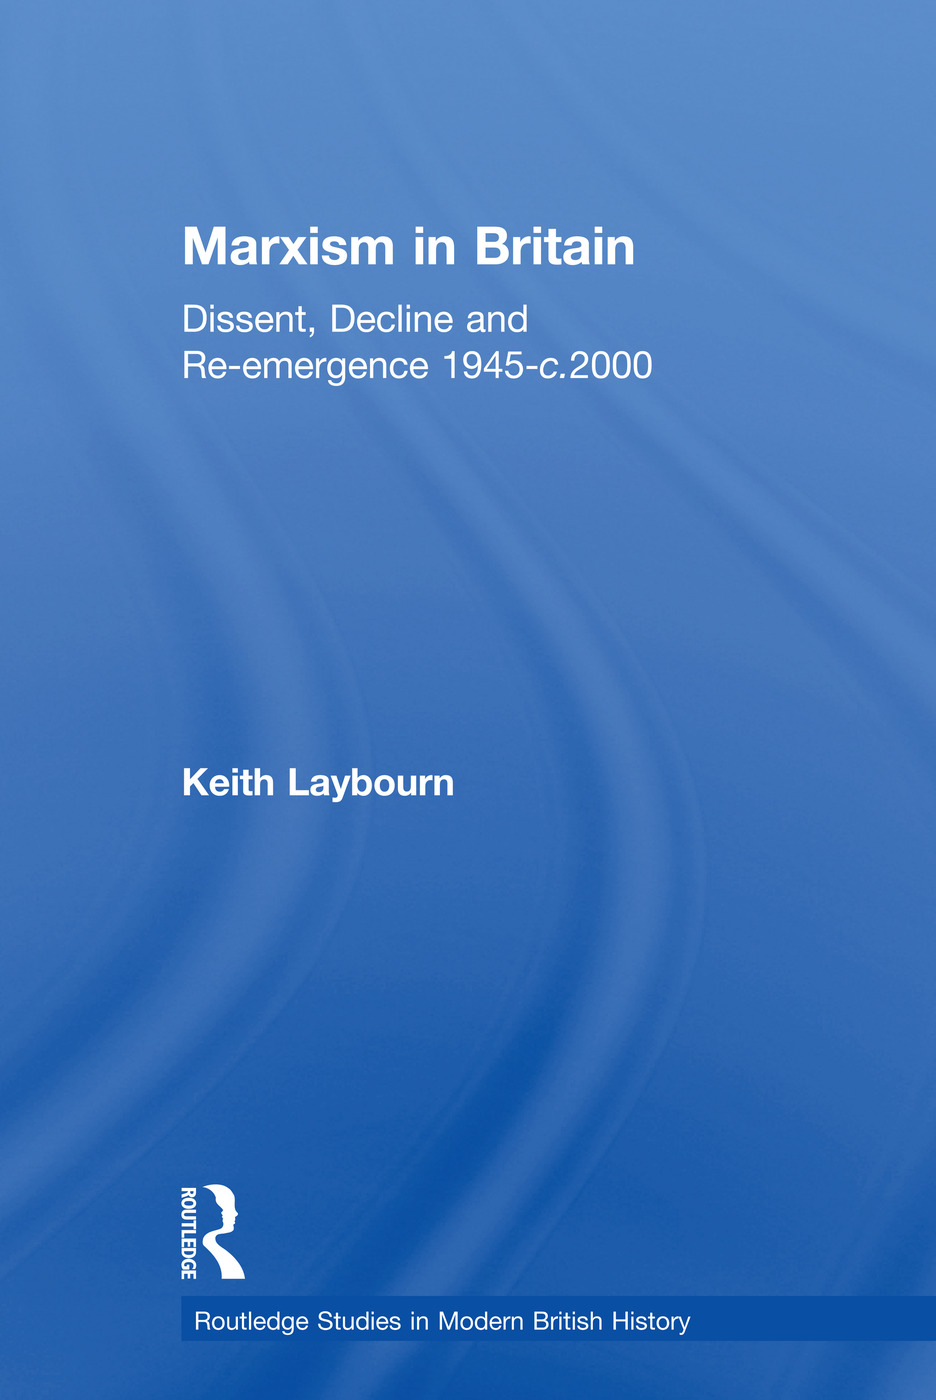 Marxism in Britain: Dissent, Decline and Re-emergence 1945-c.2000 book cover